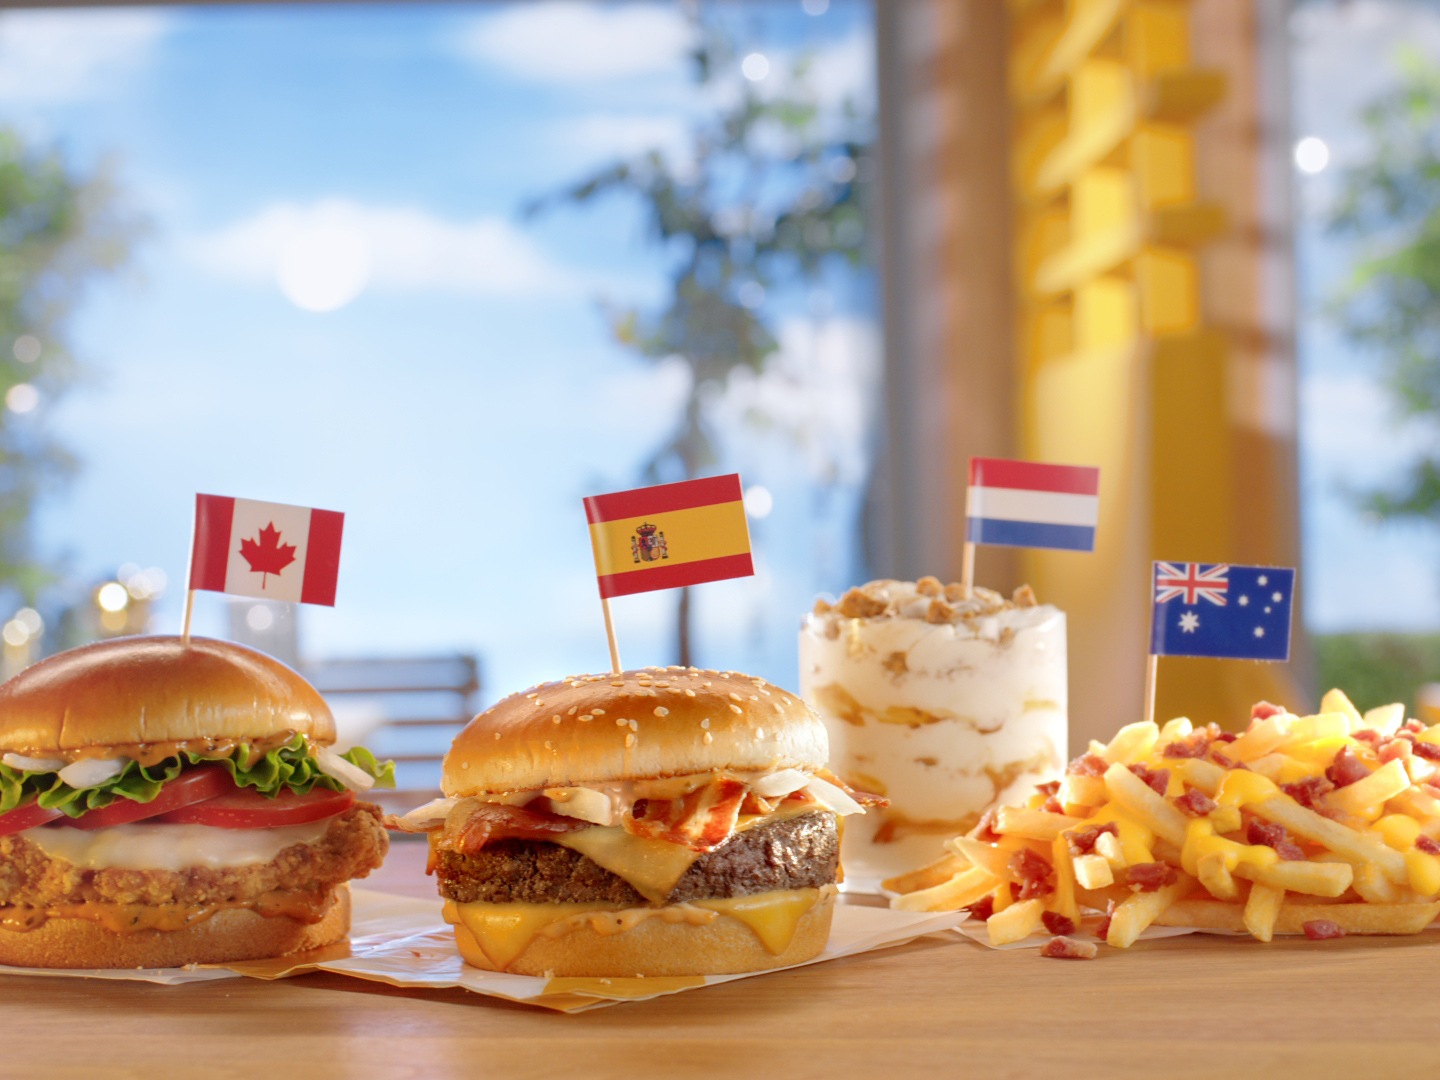 You Can Buy McDonald's With Foreign Currency This Week